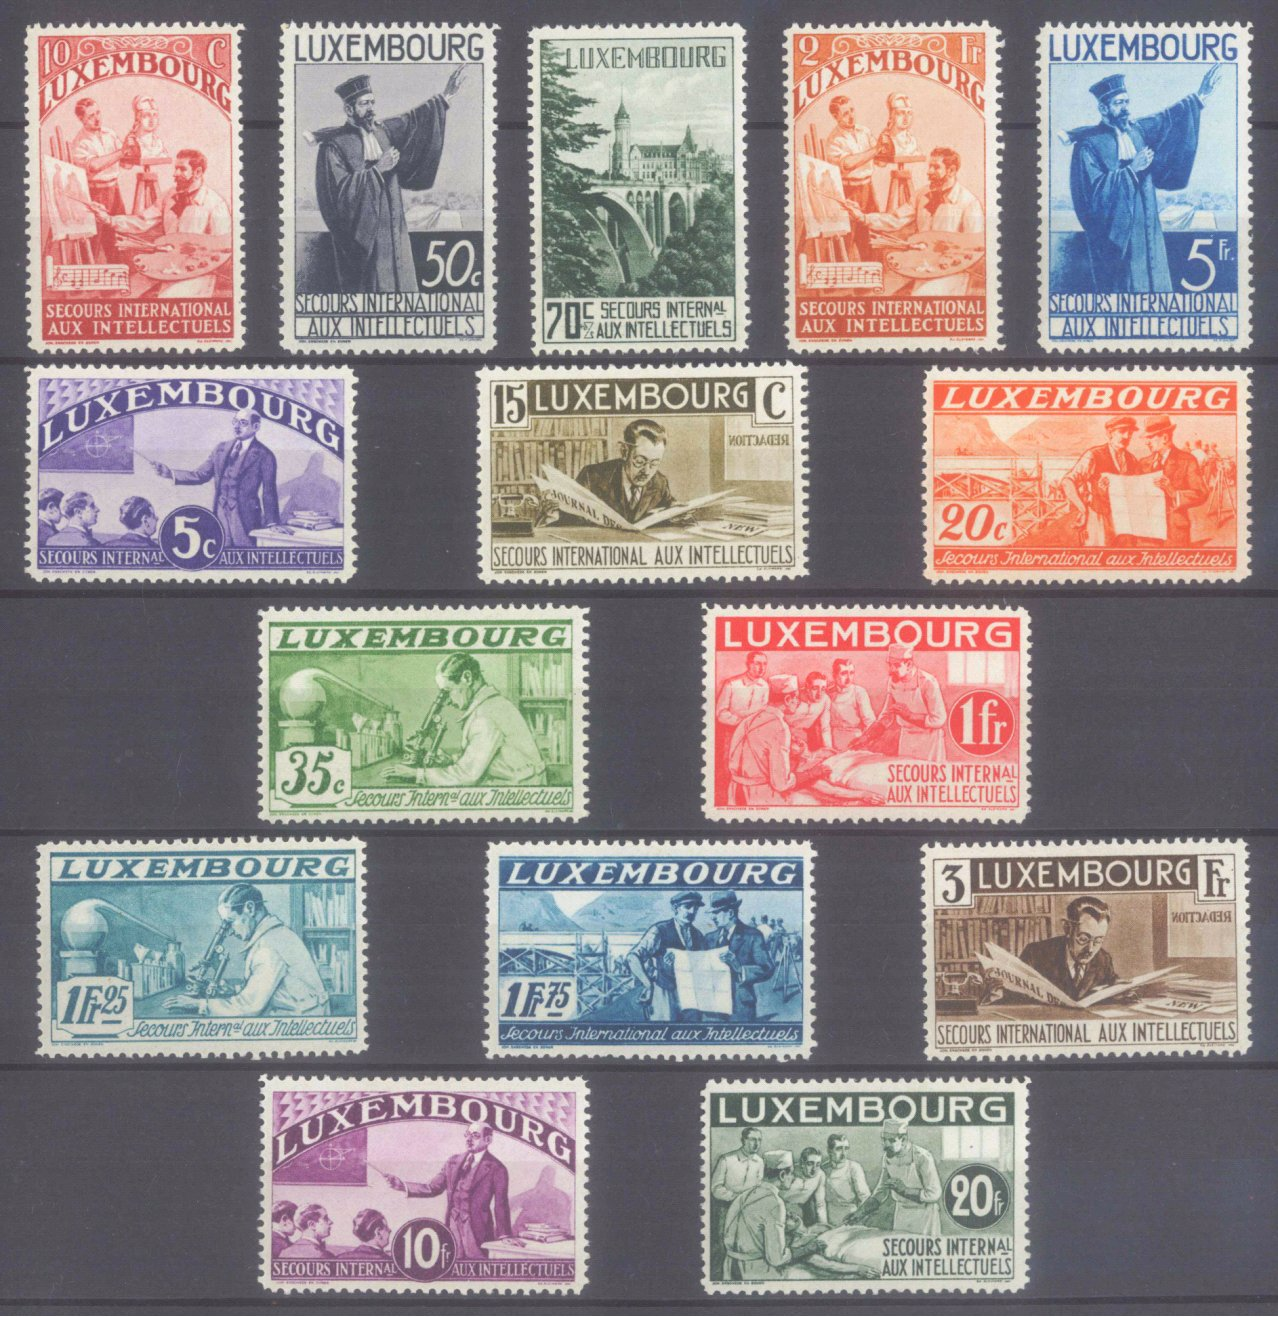 1935 LUXEMBURG, Intellektuelle